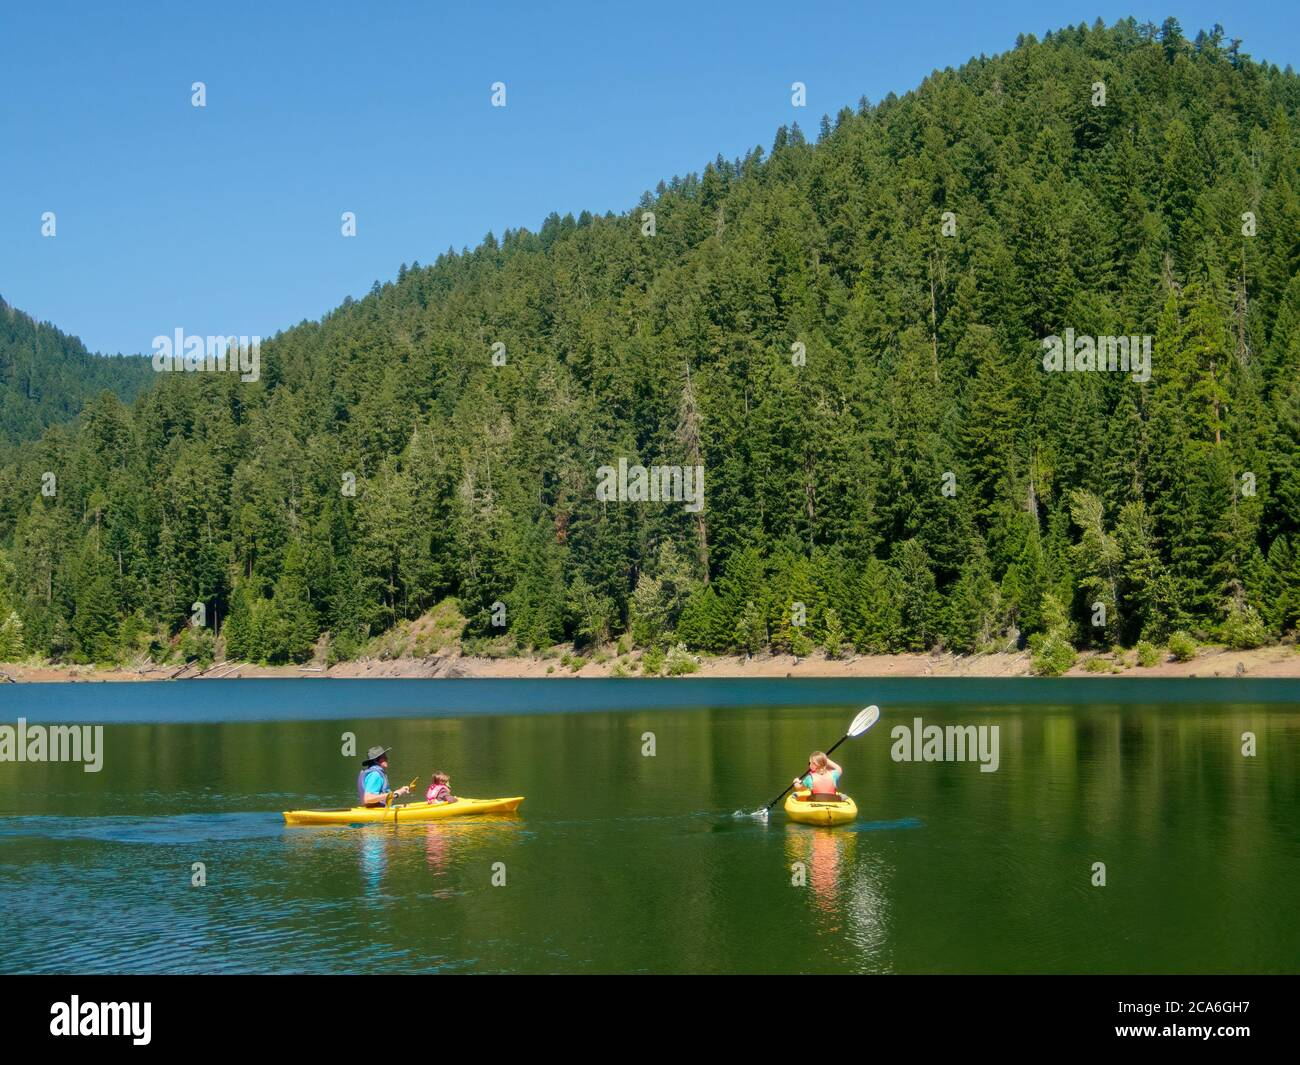 Hunter, Chester and Anabel kayaking at Larison Cove, Hills Creek Reservoir, Willamette National Forest, Oregon. Stock Photo